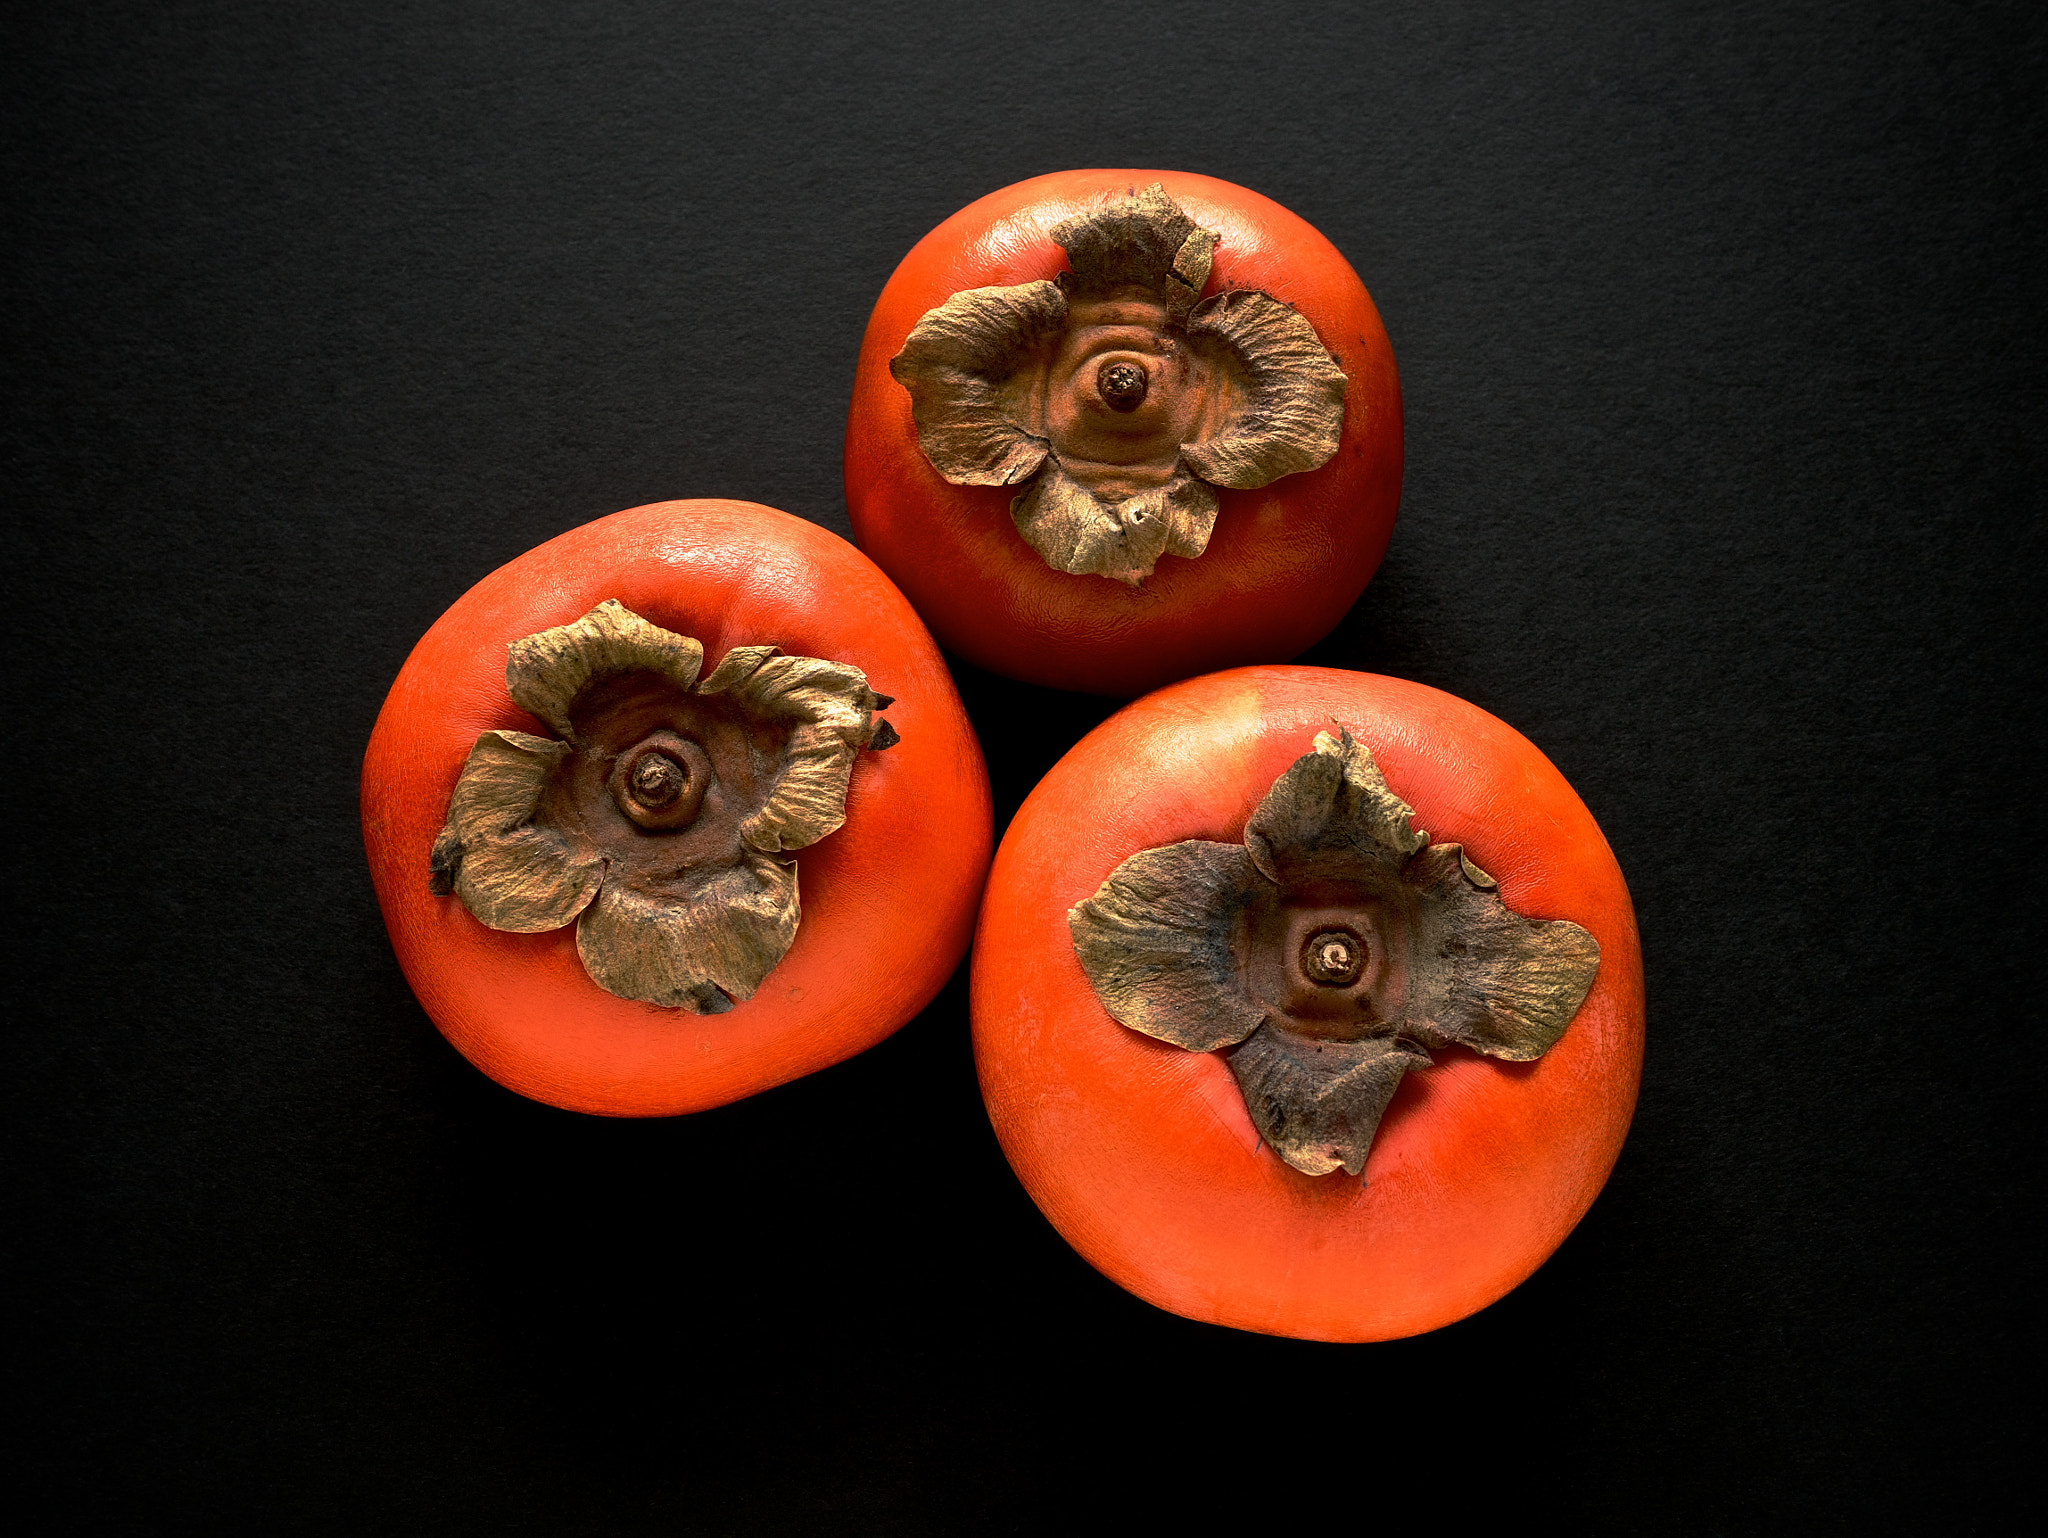 Photograph Persimmons by John Wesley on 500px